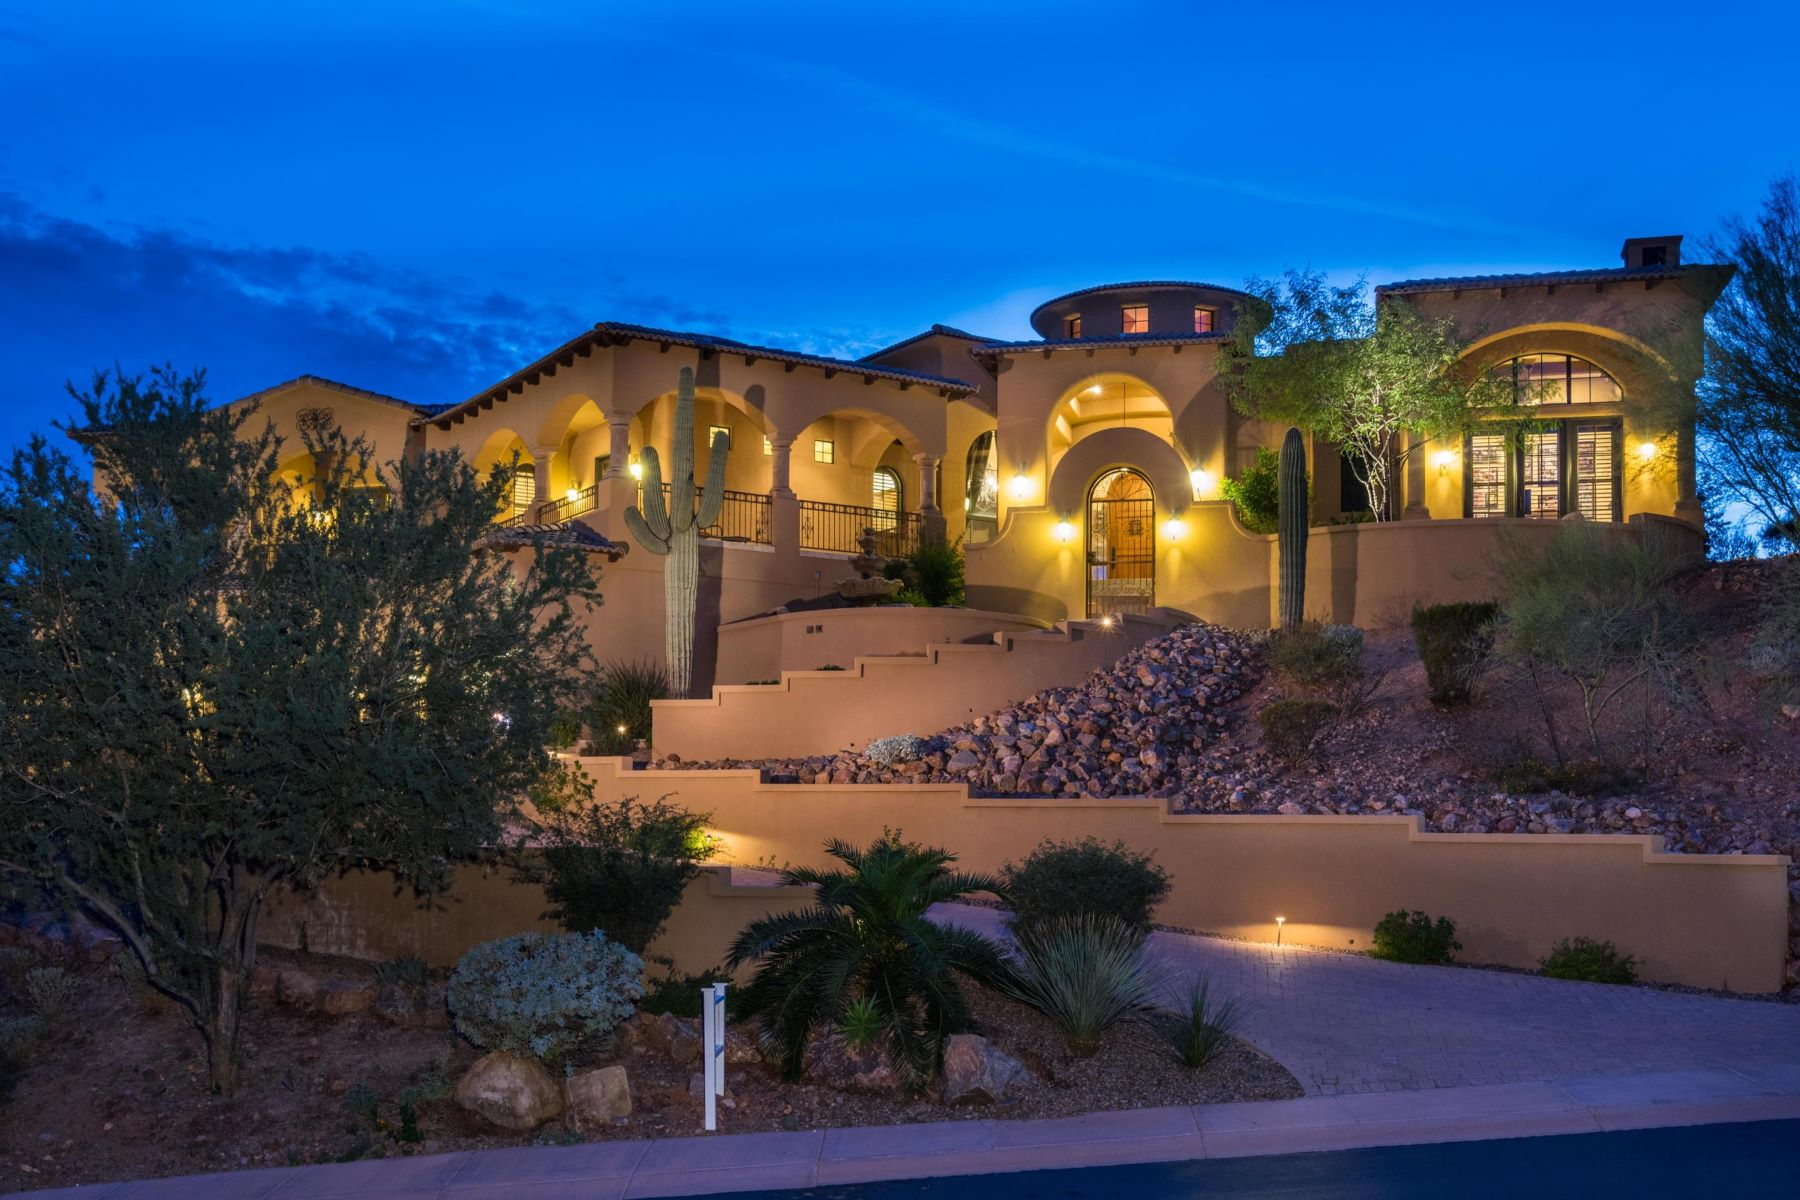 Single Family Homes for Sale at 15615 E Firerock Country Club Dr Fountain Hills, Arizona 85268 United States